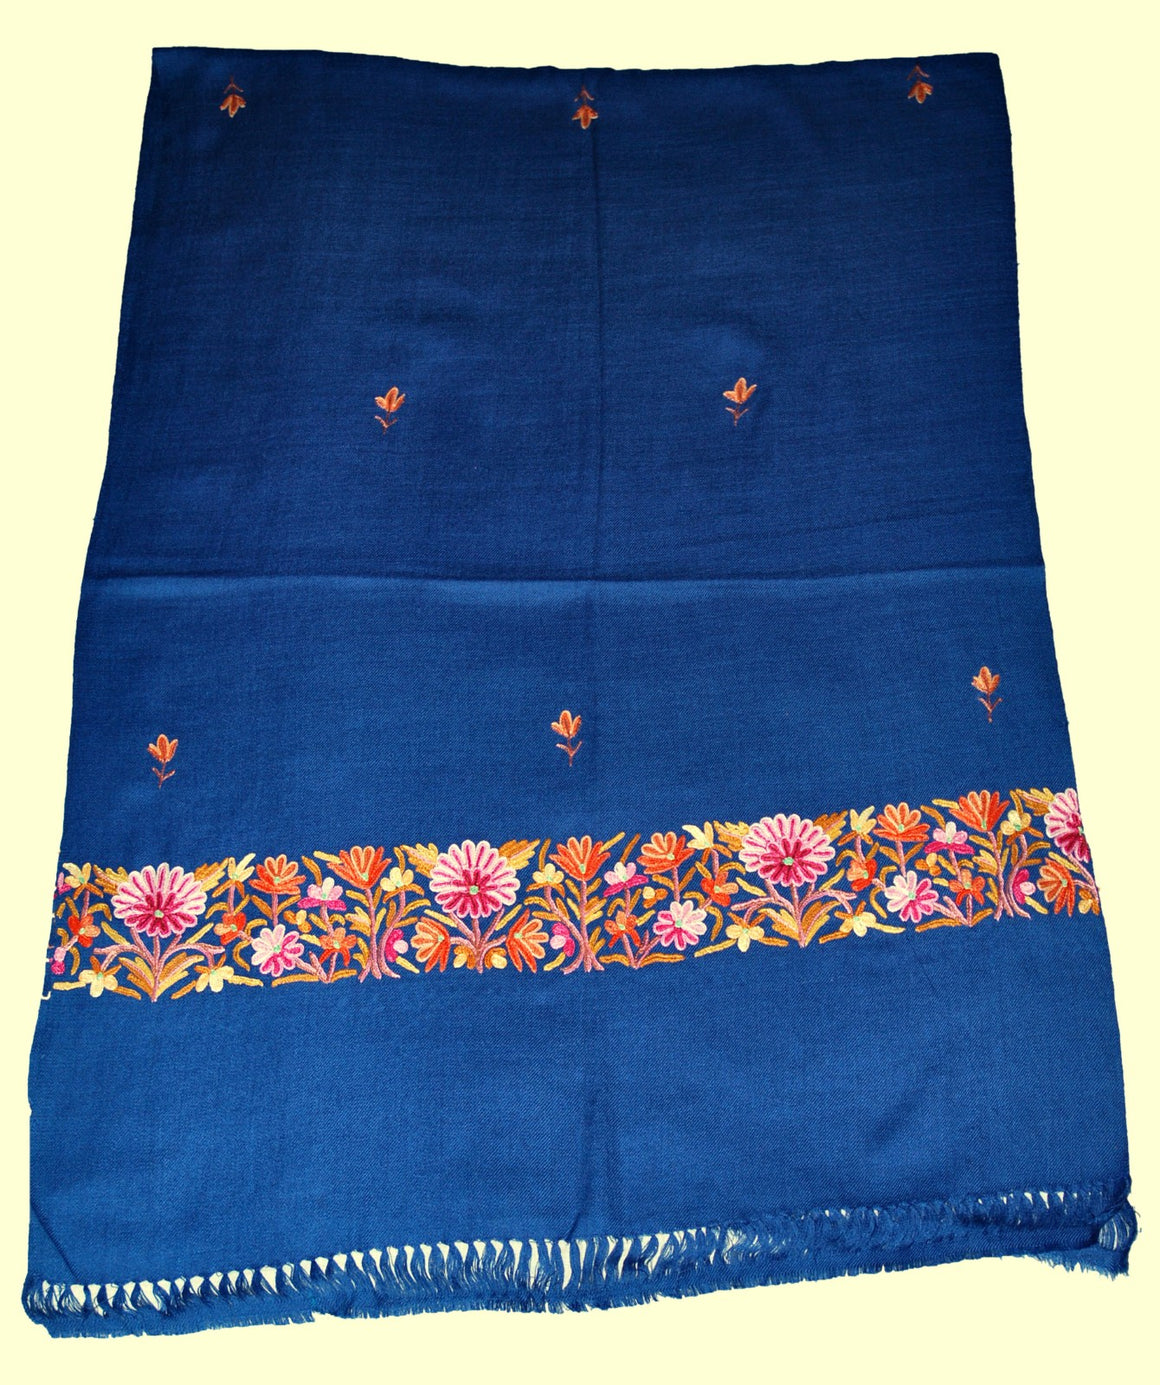 Embroidered Wool Shawl Scarf Navy Blue, Multicolor Embroidery #WS-128